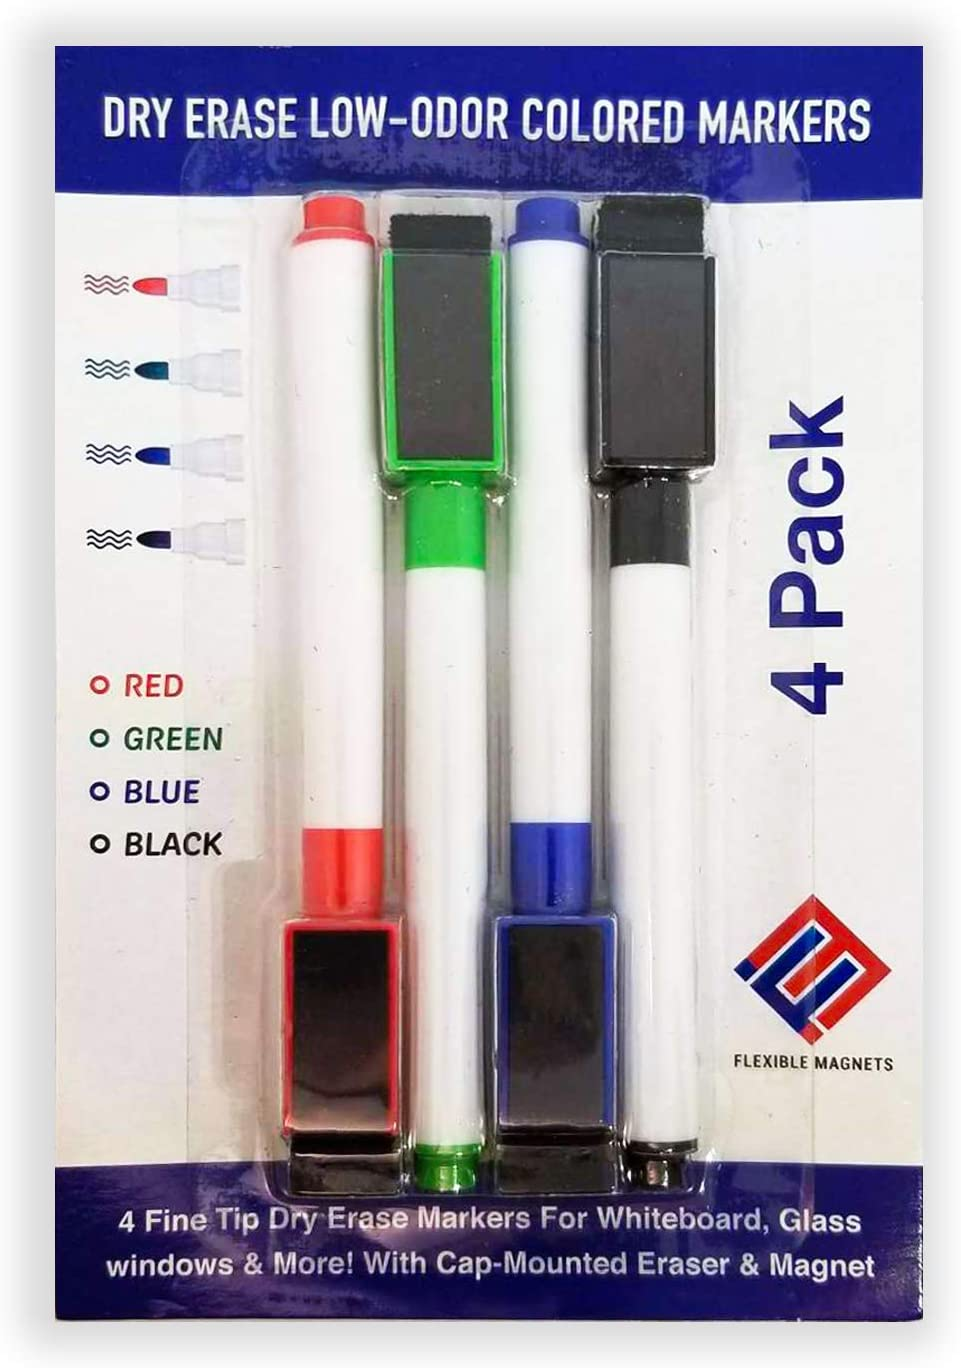 Dry Erase Low-Odor Colored Nippon regular agency Markers For Glass Whiteboard windows Max 53% OFF